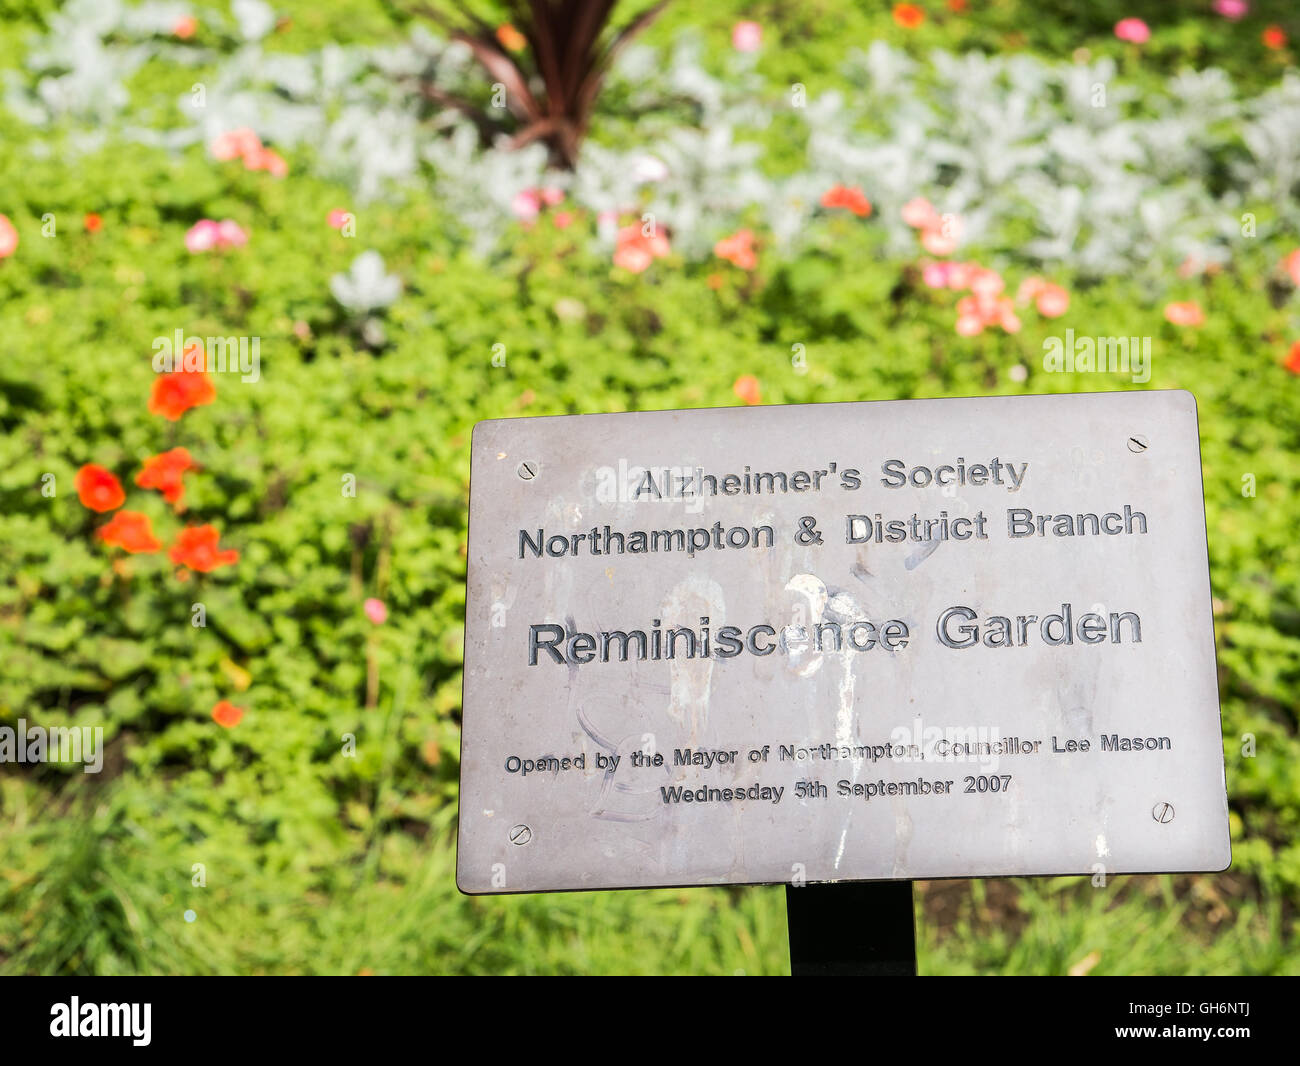 Reminiscence garden at Abington park, dating from medieval times, and the largest park in Northampton, England. - Stock Image